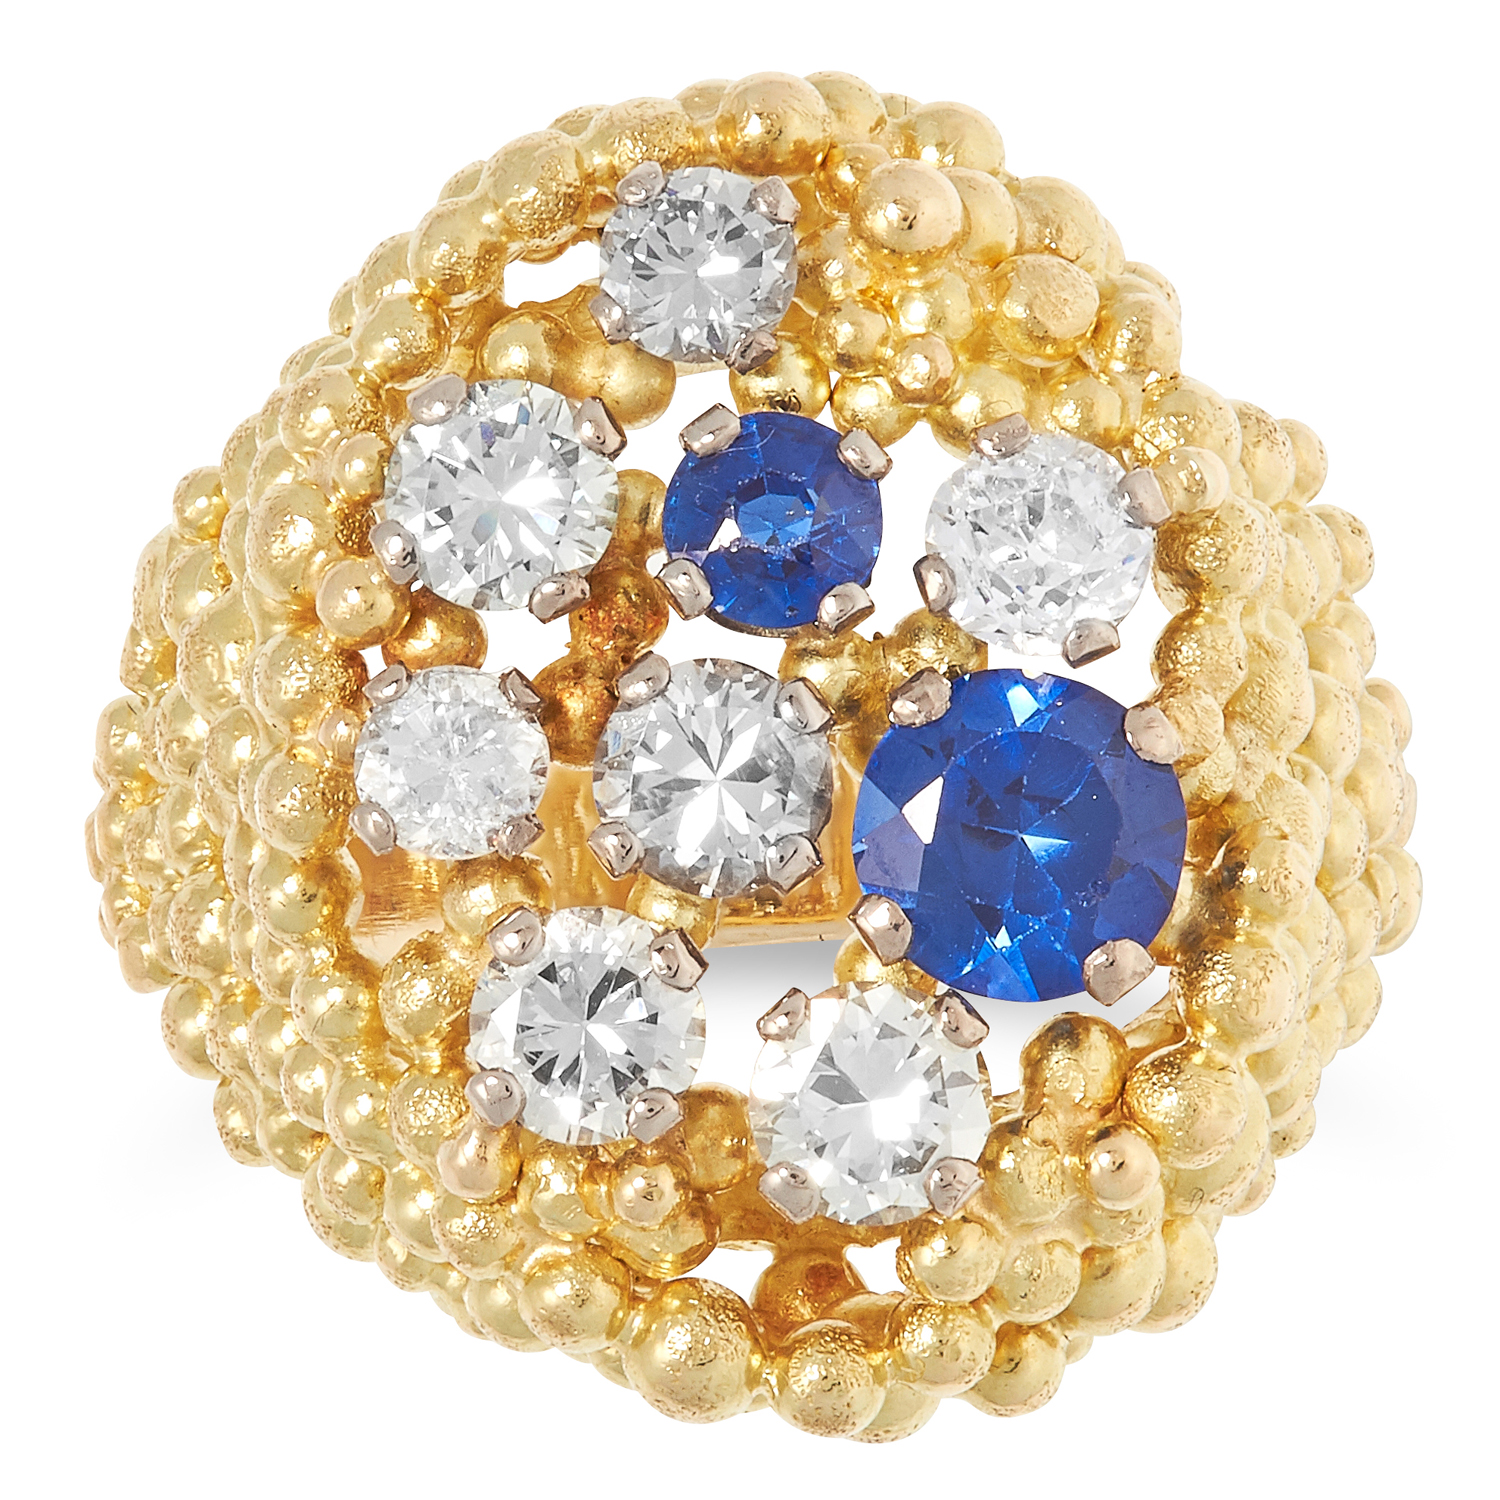 A DIAMOND AND SAPPHIRE RING, CHARLES DE TEMPLE 1972 the abstract beaded and textured design set with